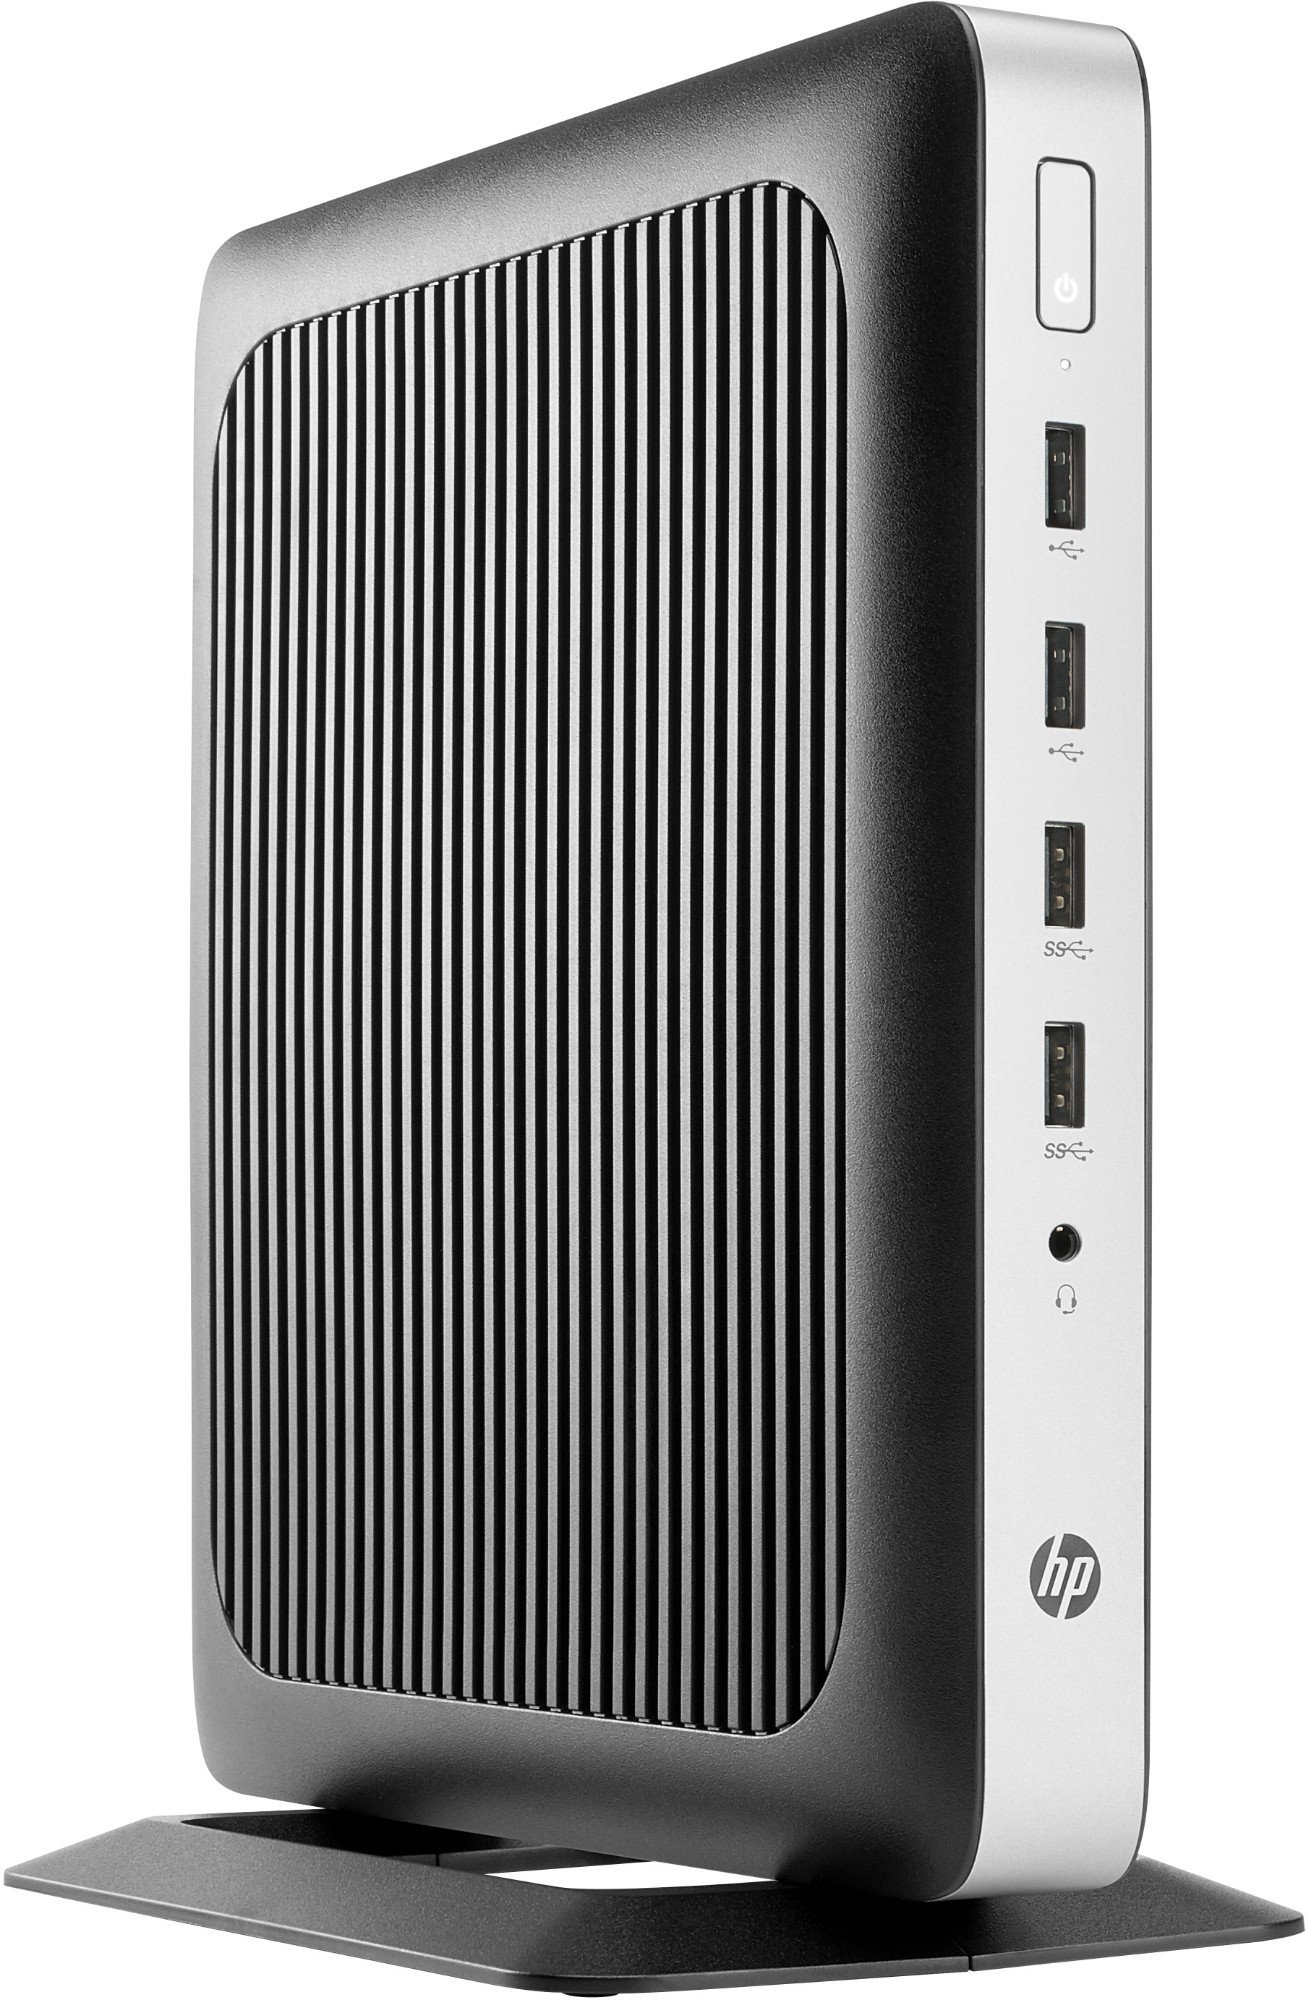 HP t630 Thin Client AMD GX-420GI SoC / 32GB Flash 8GB Wi-Fi Win10 IoT Ent